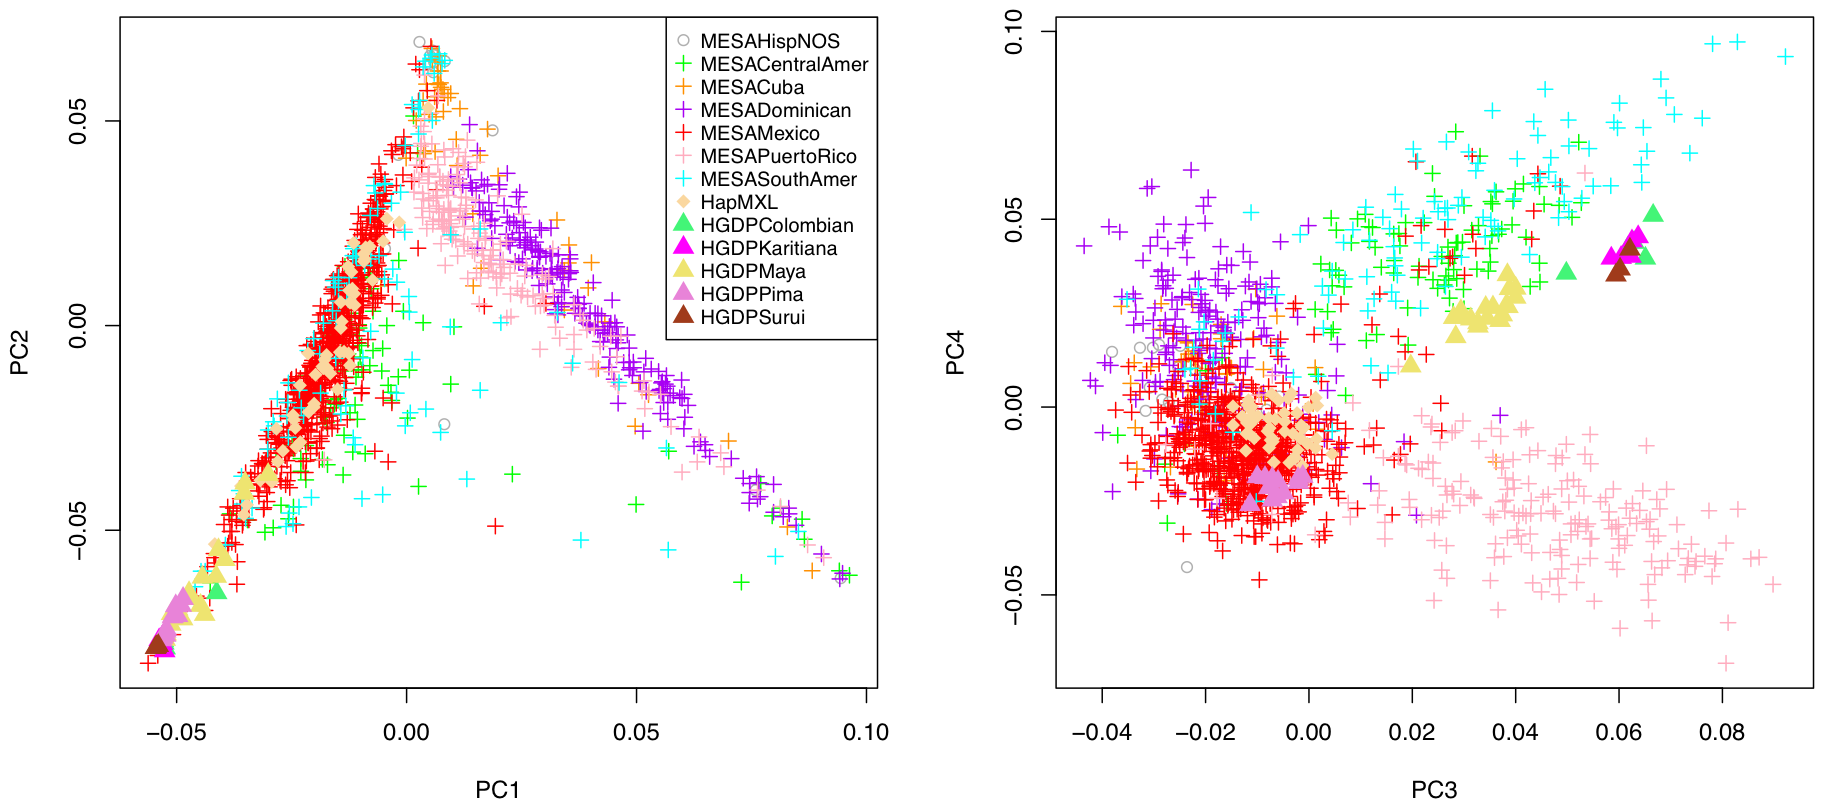 Principal component analysis of 1,374 unrelated individuals of self-reported Hispanic origin from the Multi-Ethnic Study of Atherosclerosis (MESA), displayed by country/region of origin, with projection to key reference populations.